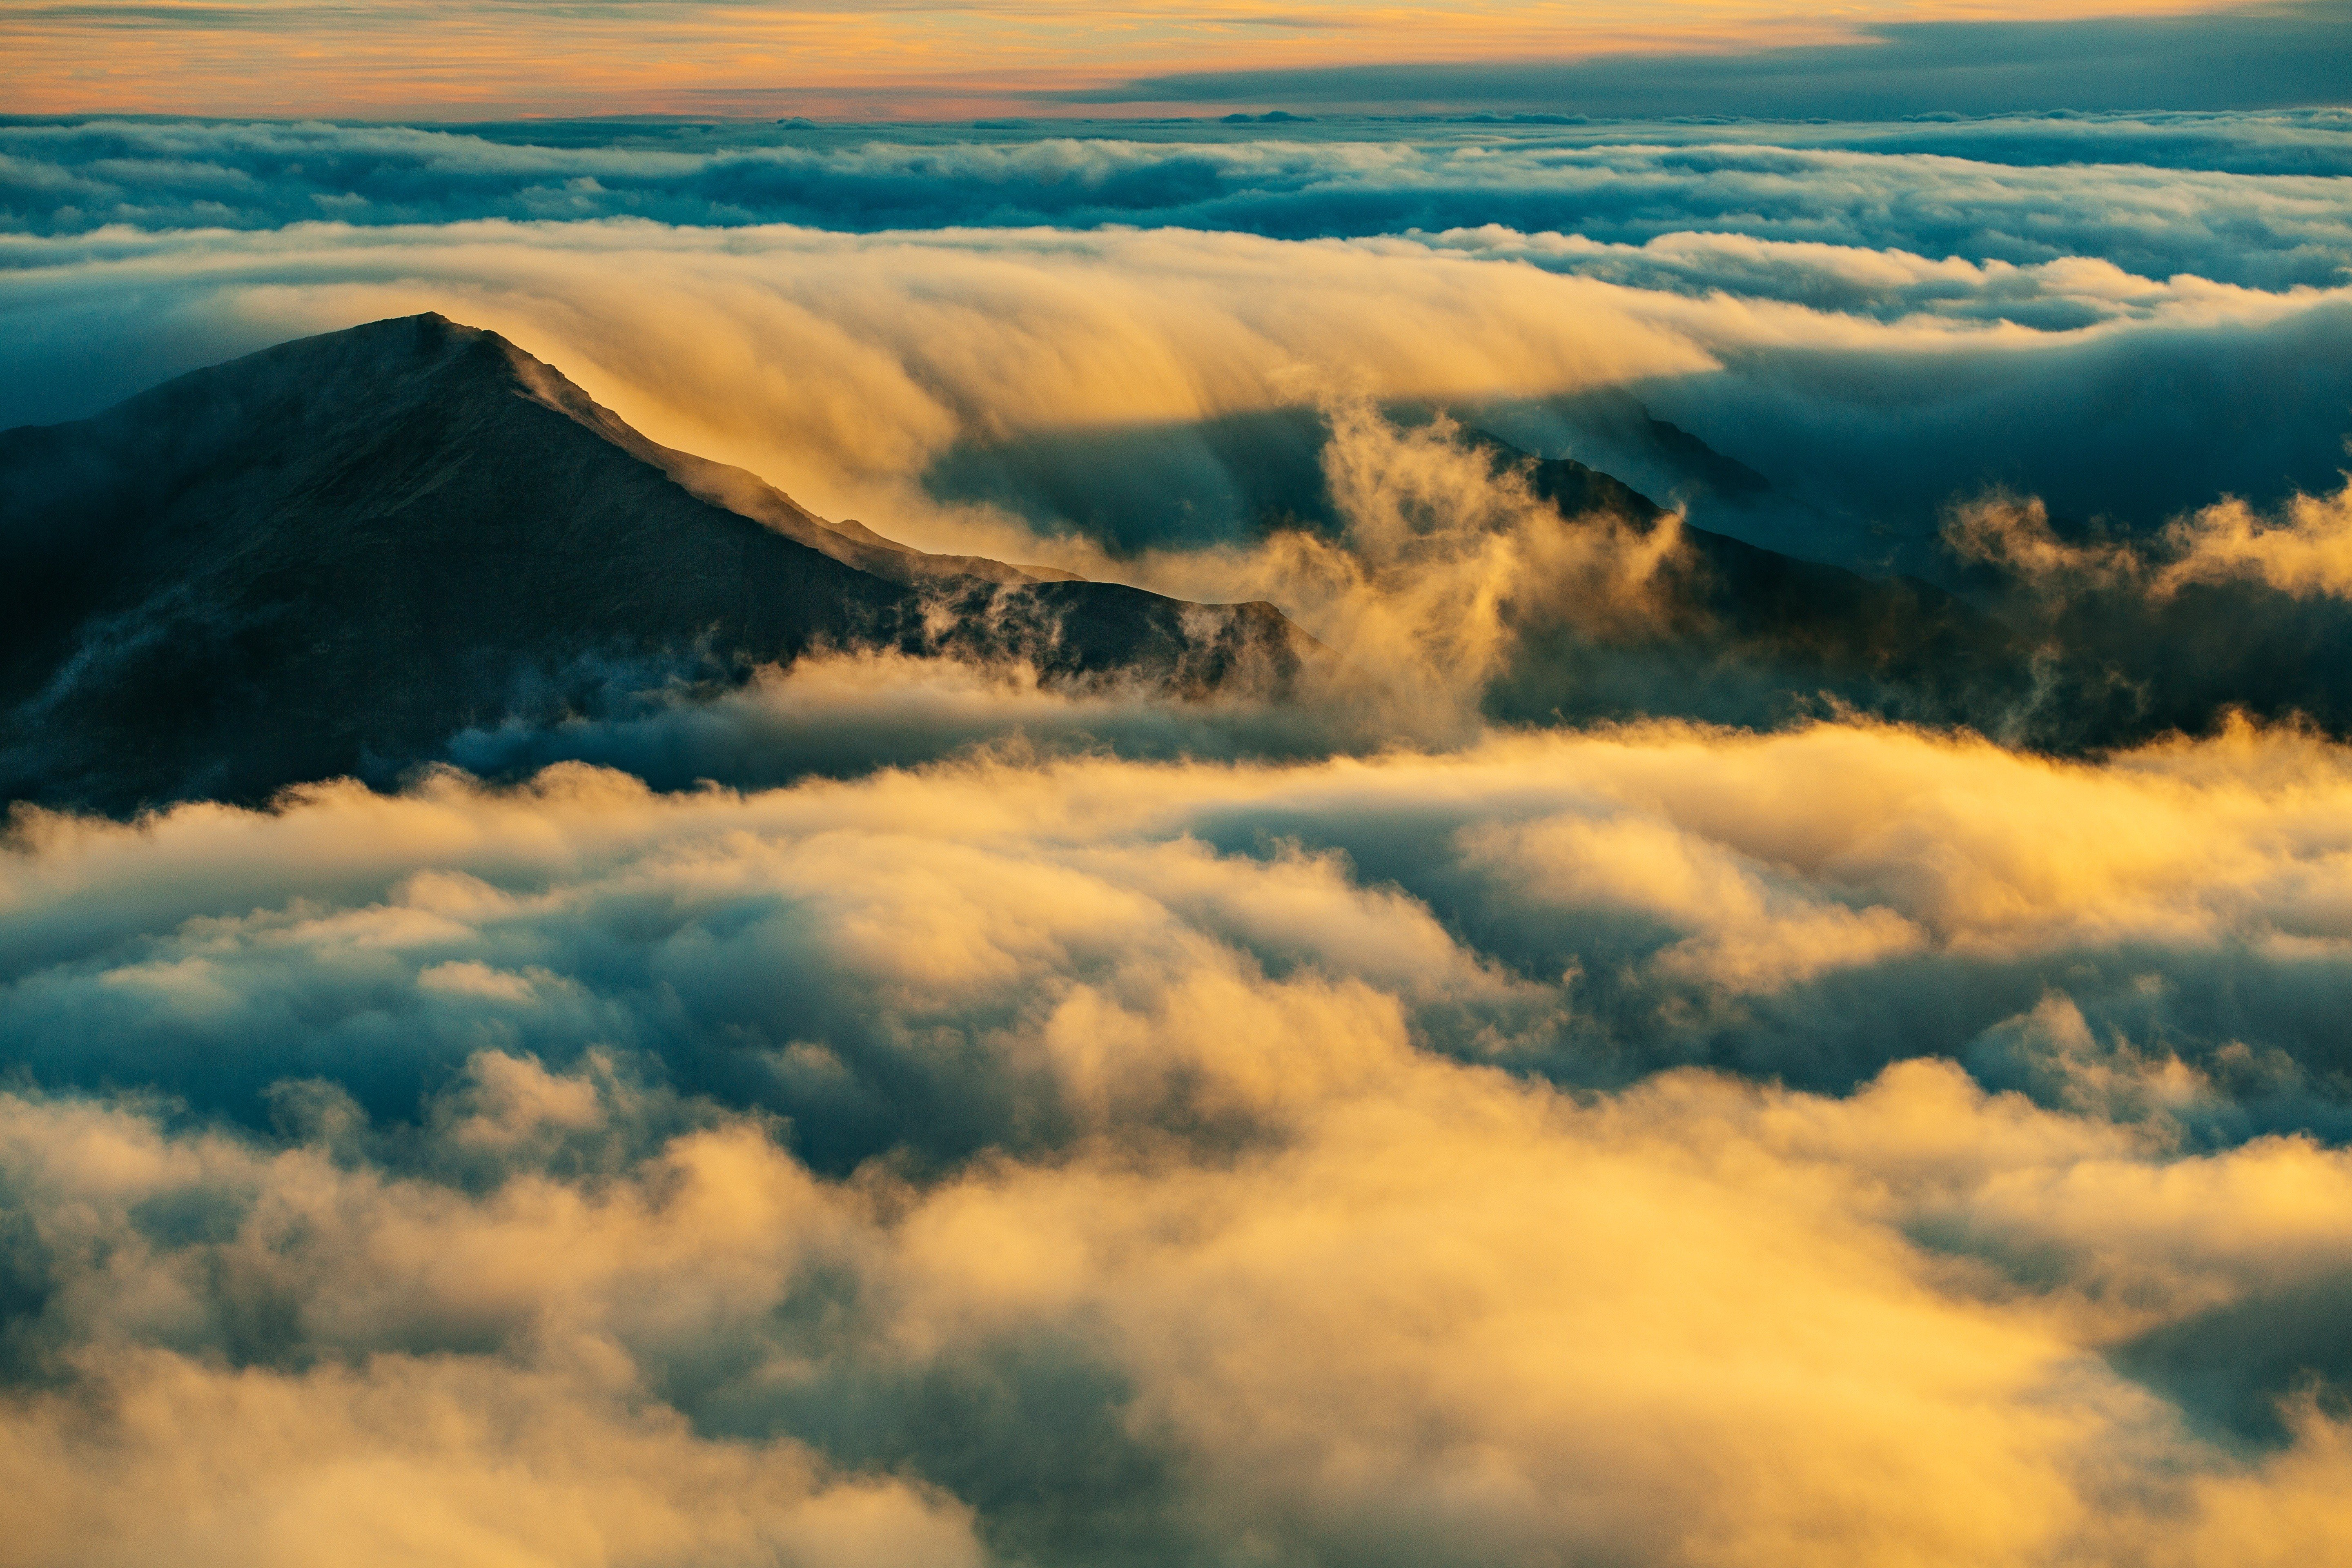 mountains, Top view, Clouds, Nature Wallpaper